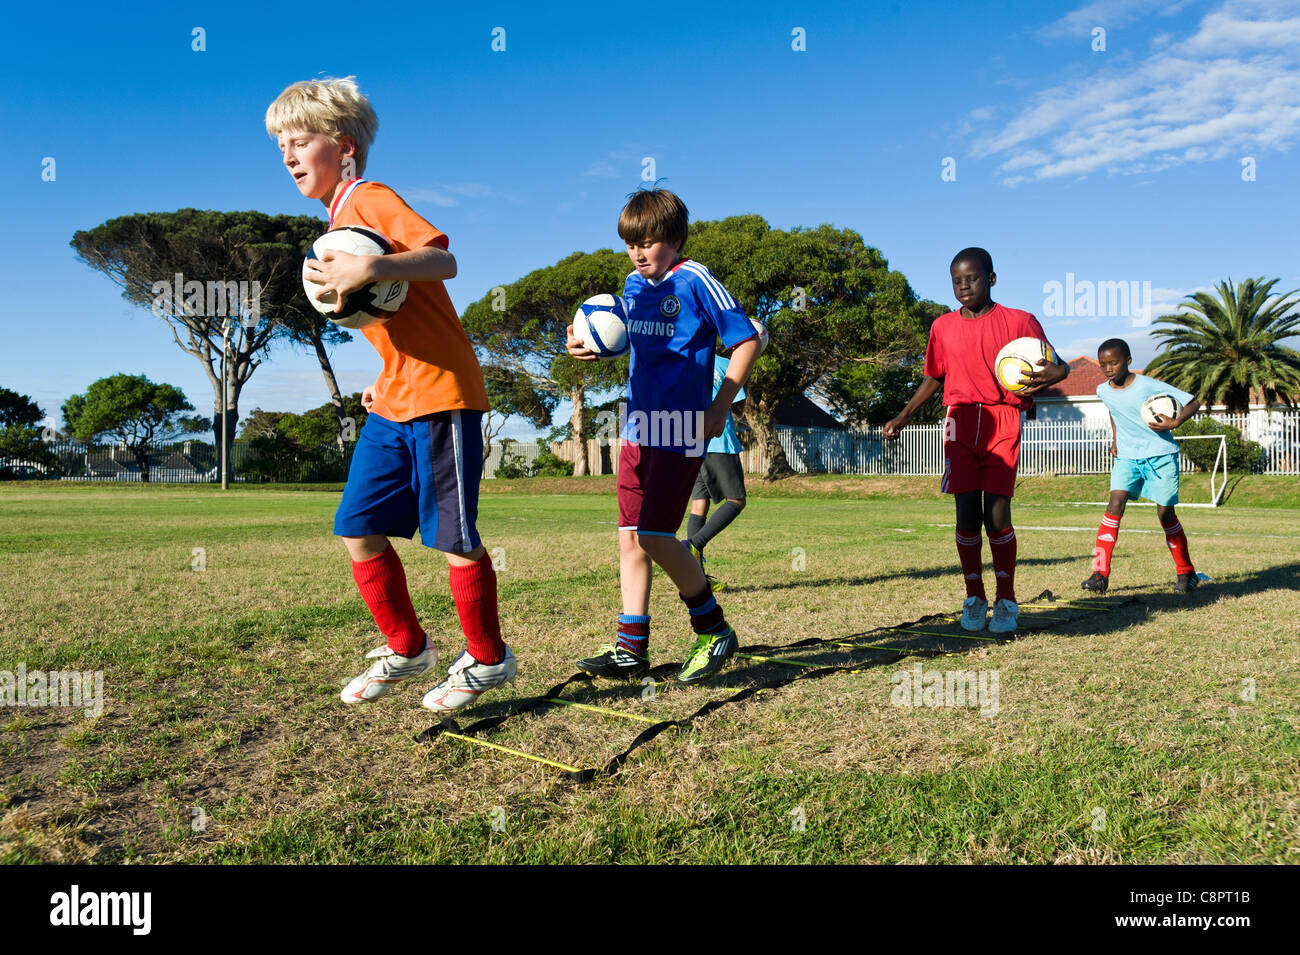 Junior football players practicing ball skills Cape Town South Africa - Stock Image